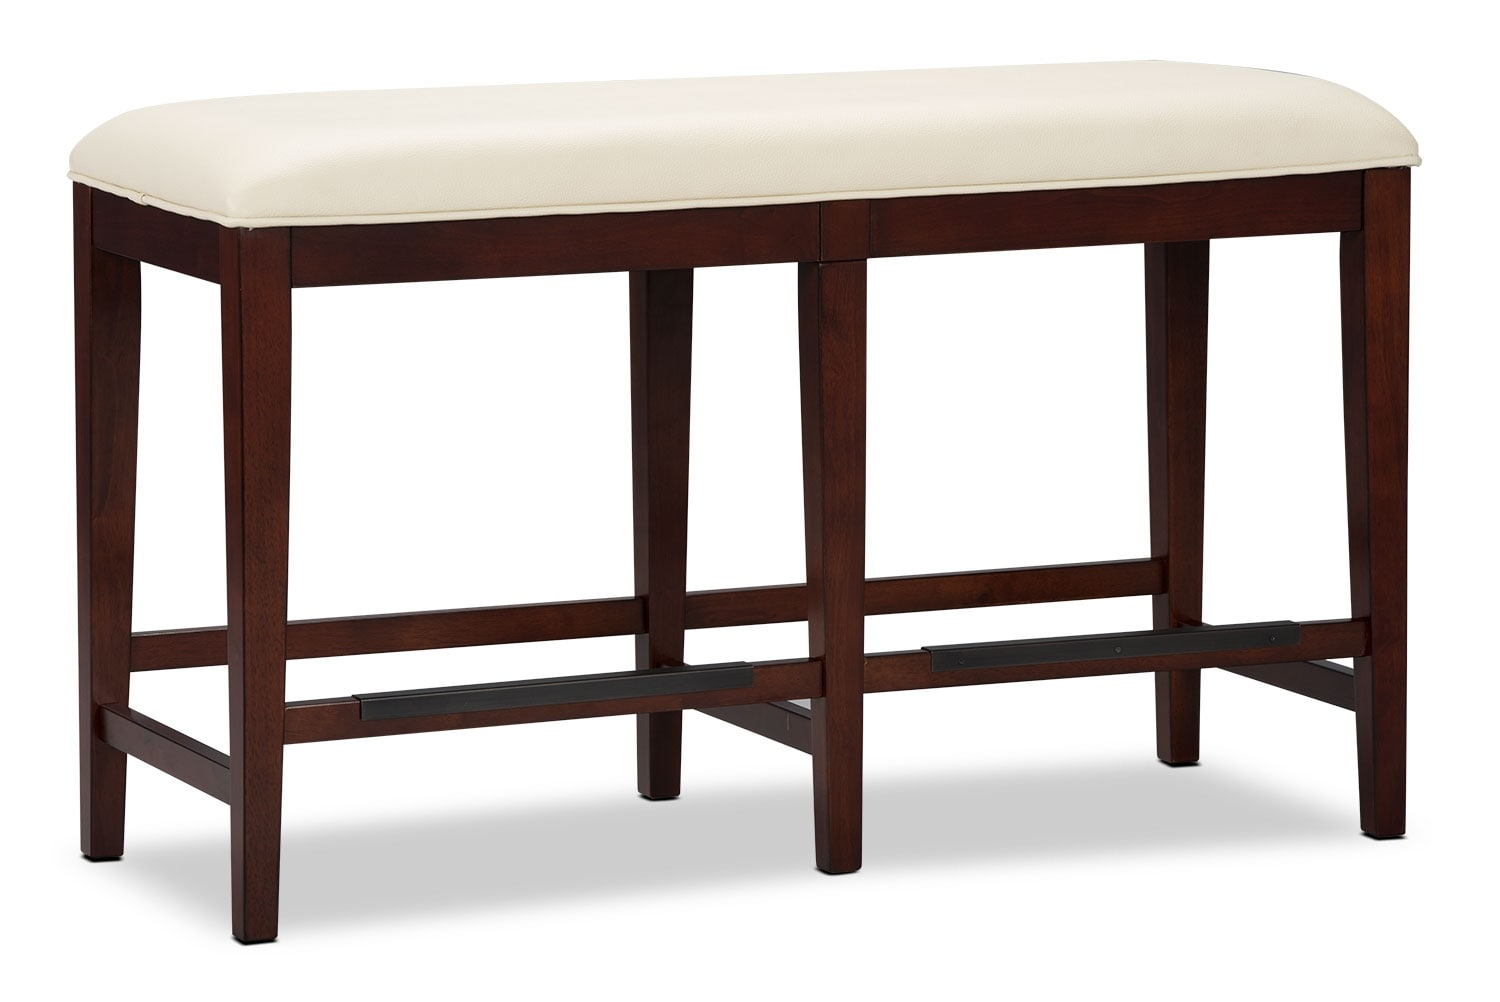 Dining Room Furniture - Zeno Counter-Height Dining Bench